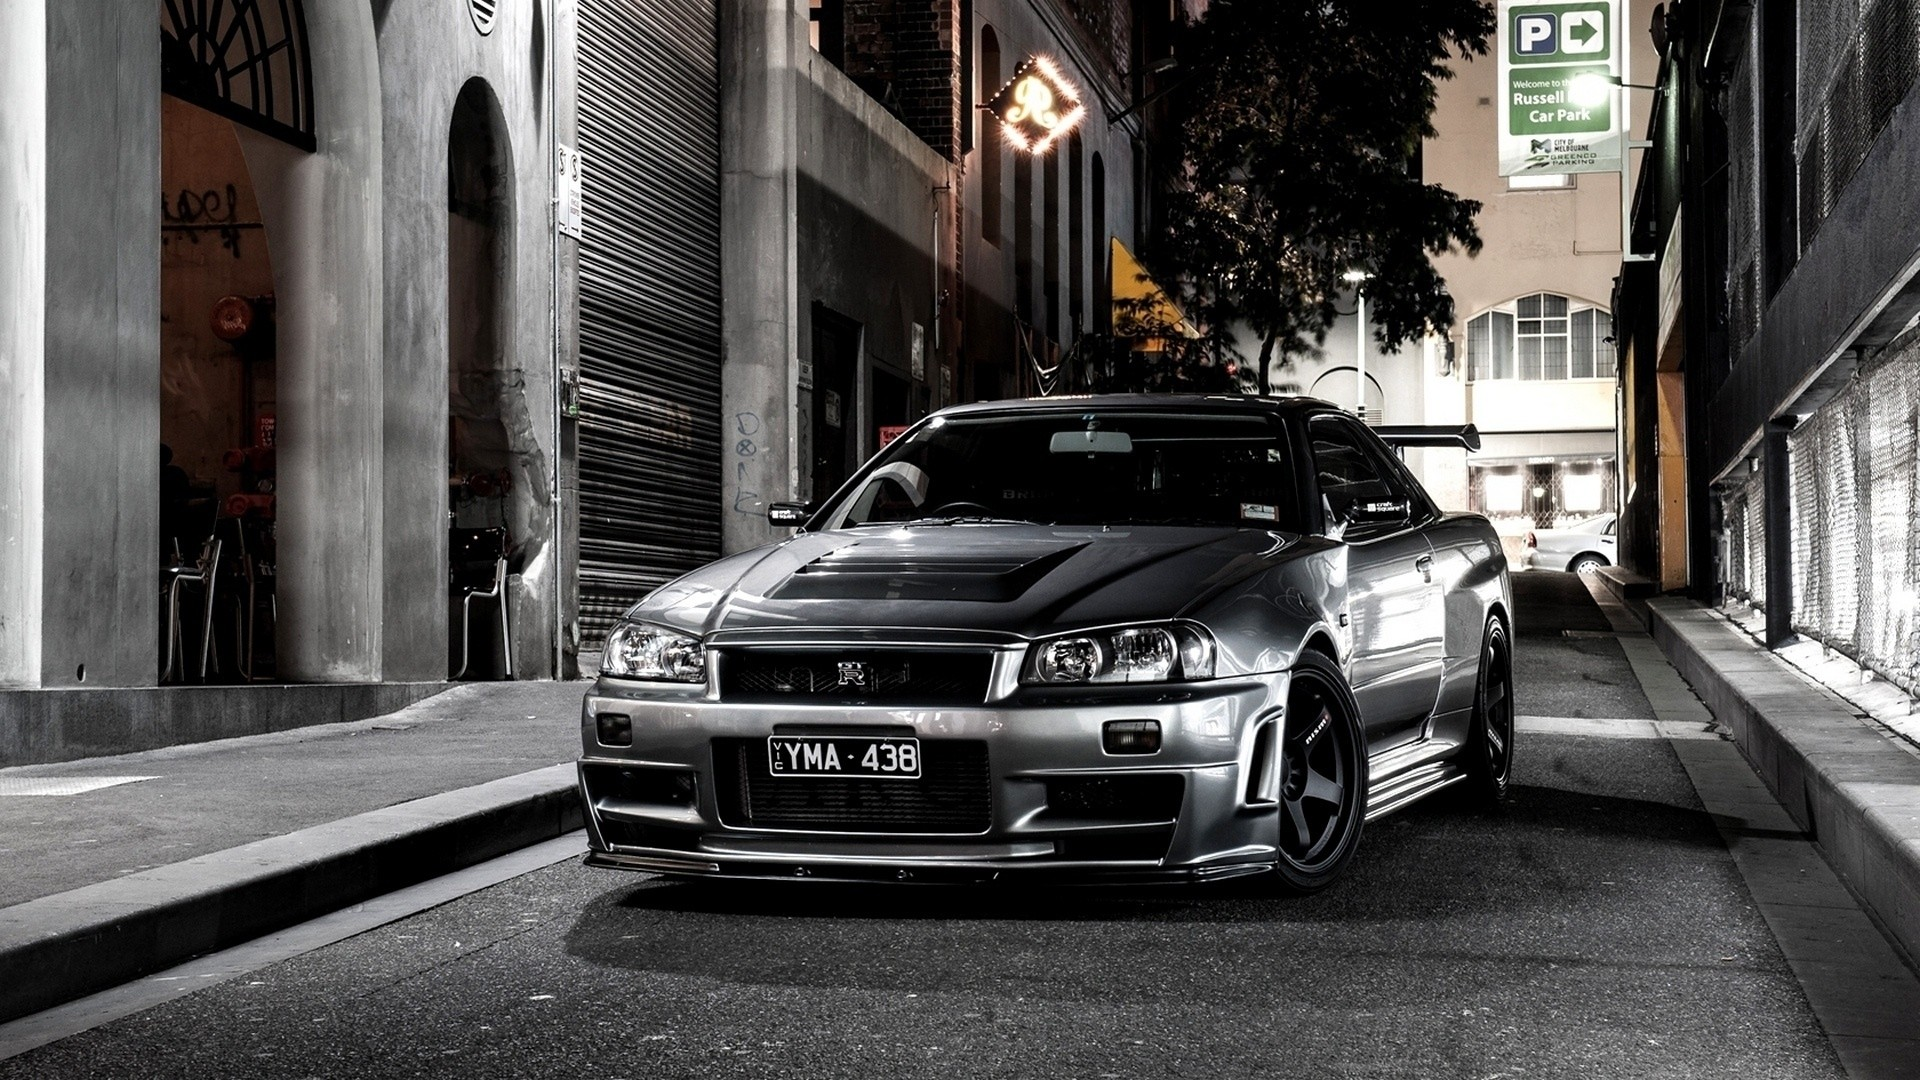 Preview wallpaper nissan, auto, black, street 1920×1080